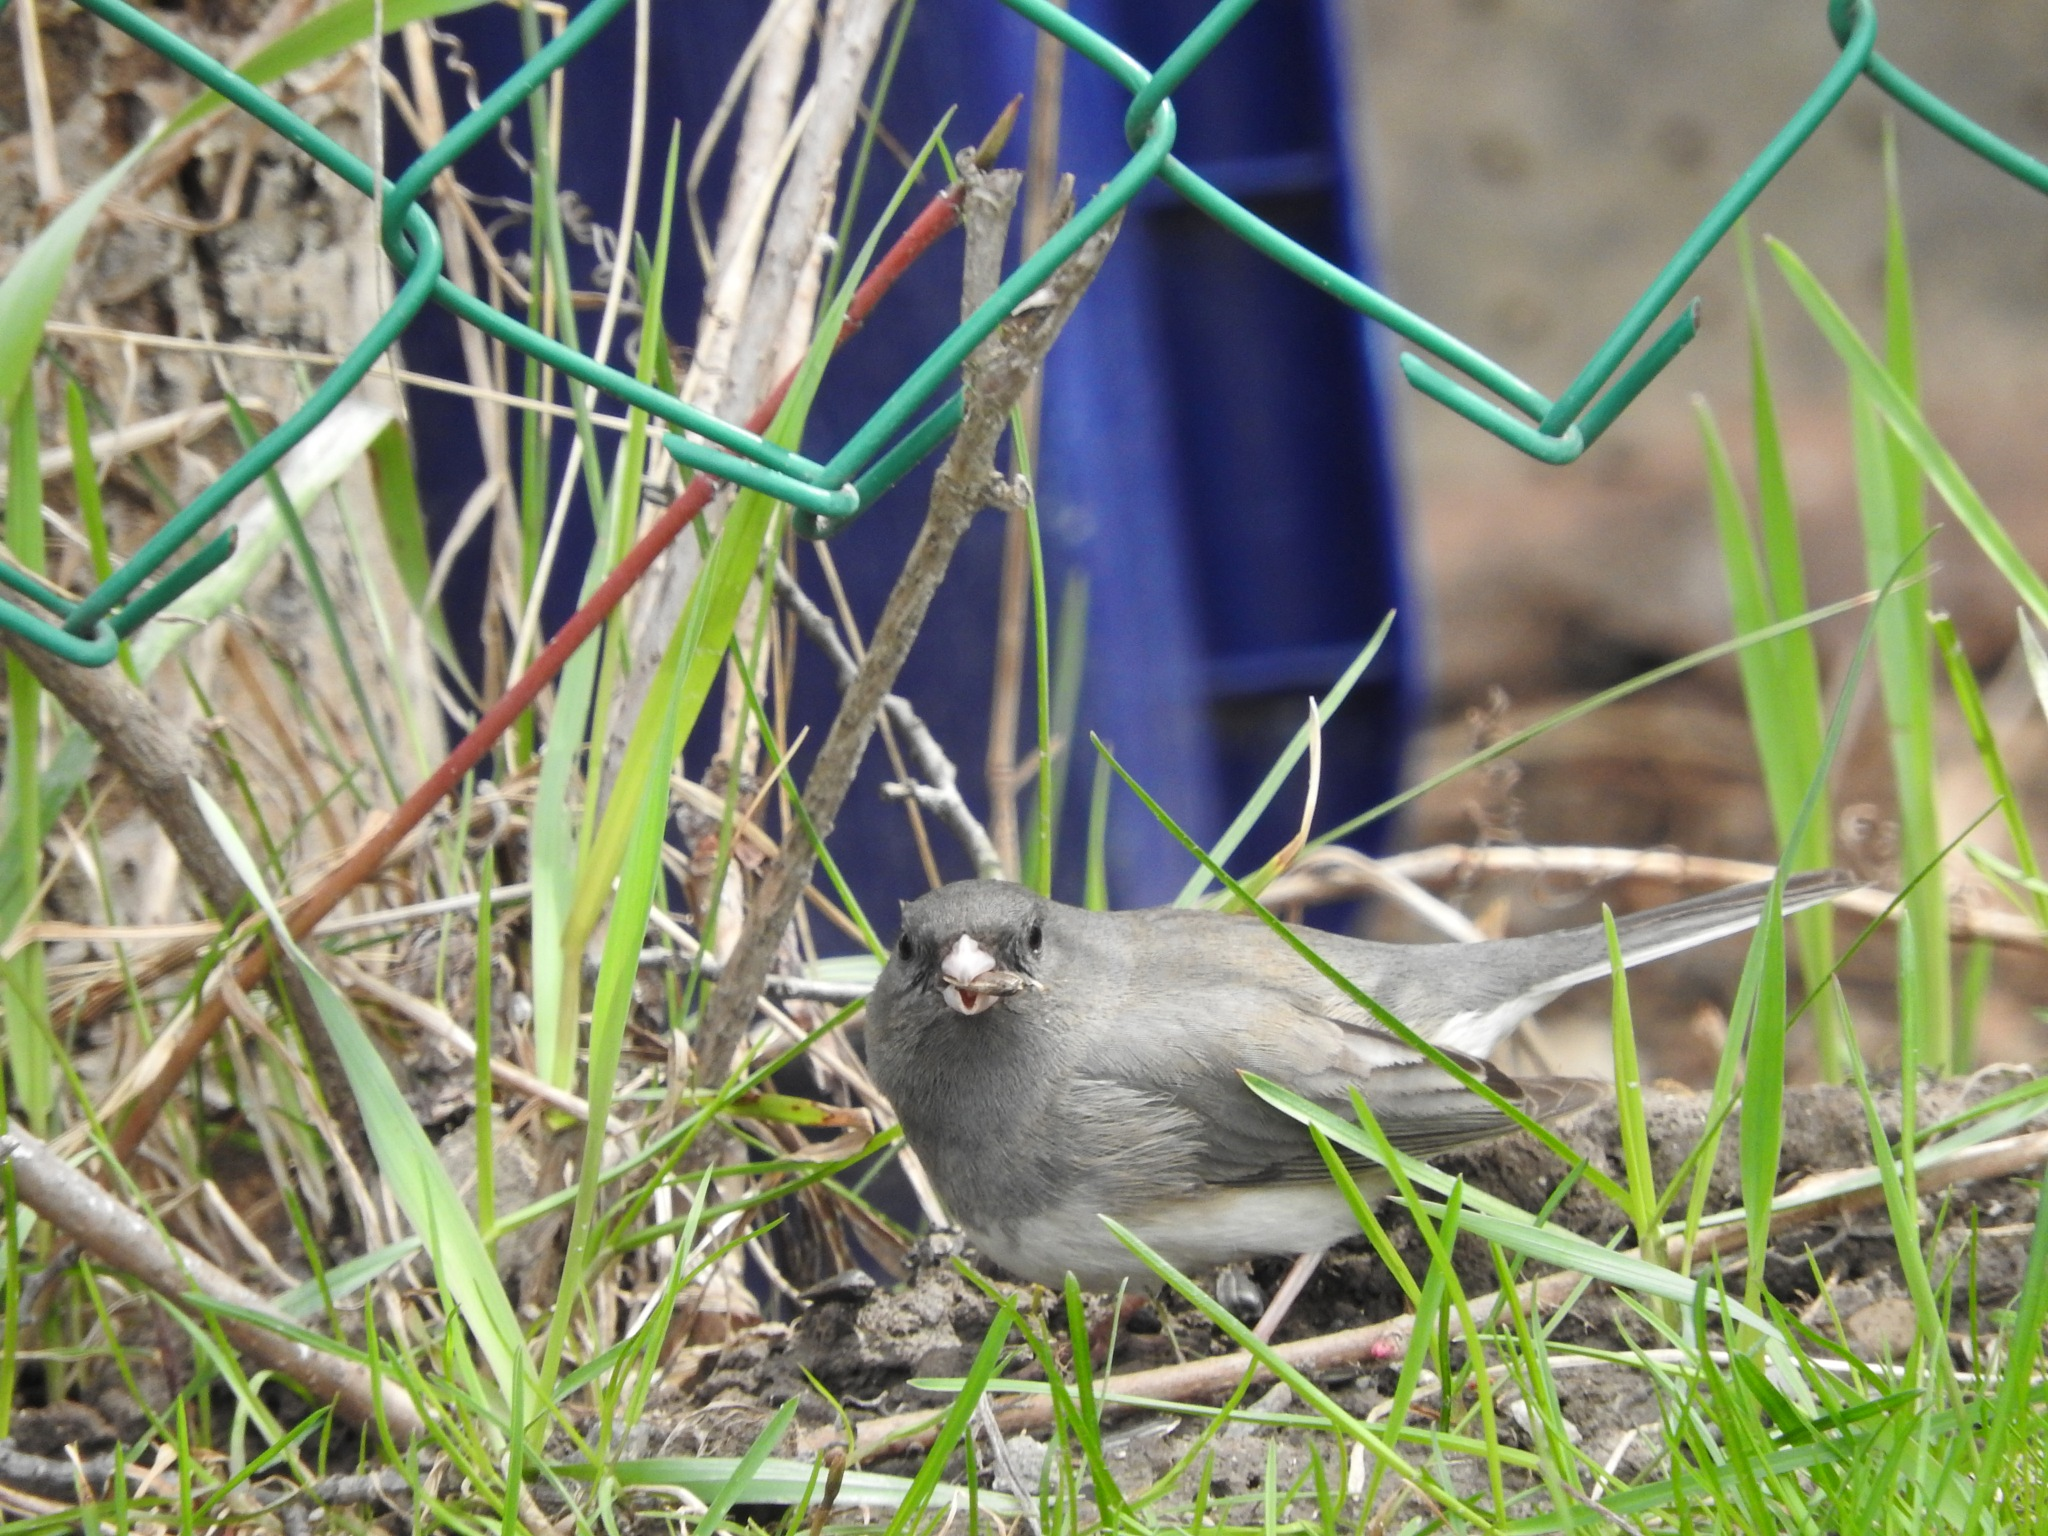 dark eyed junco munching on sunflower seeds by Lorraine Furmanic